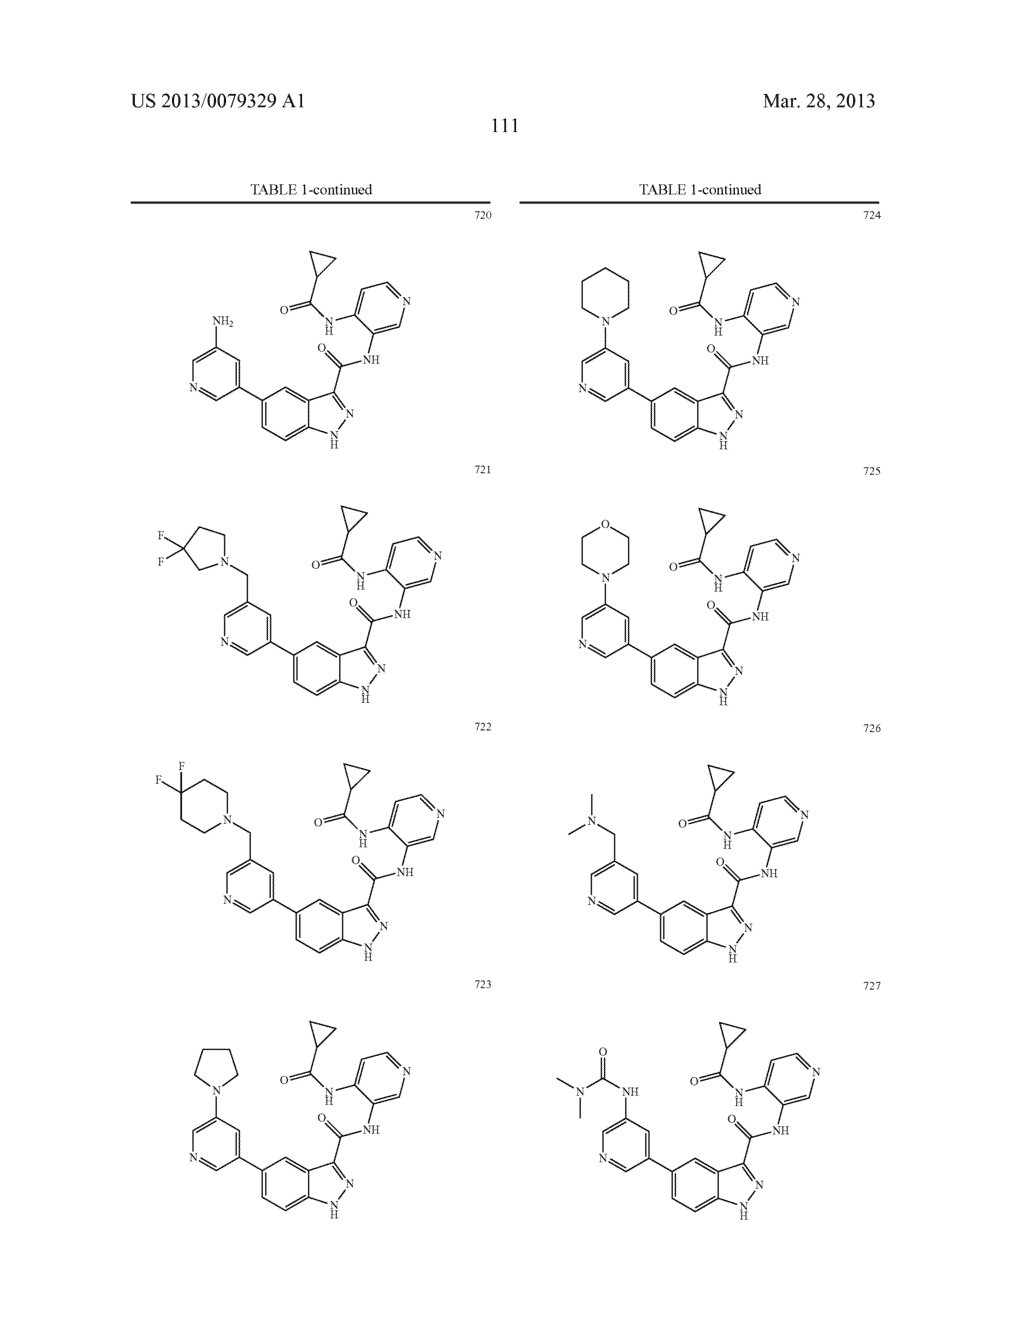 INDAZOLE-3-CARBOXAMIDES AND THEIR USE AS WNT/Beta-CATENIN SIGNALING     PATHWAY INHIBITORS - diagram, schematic, and image 112